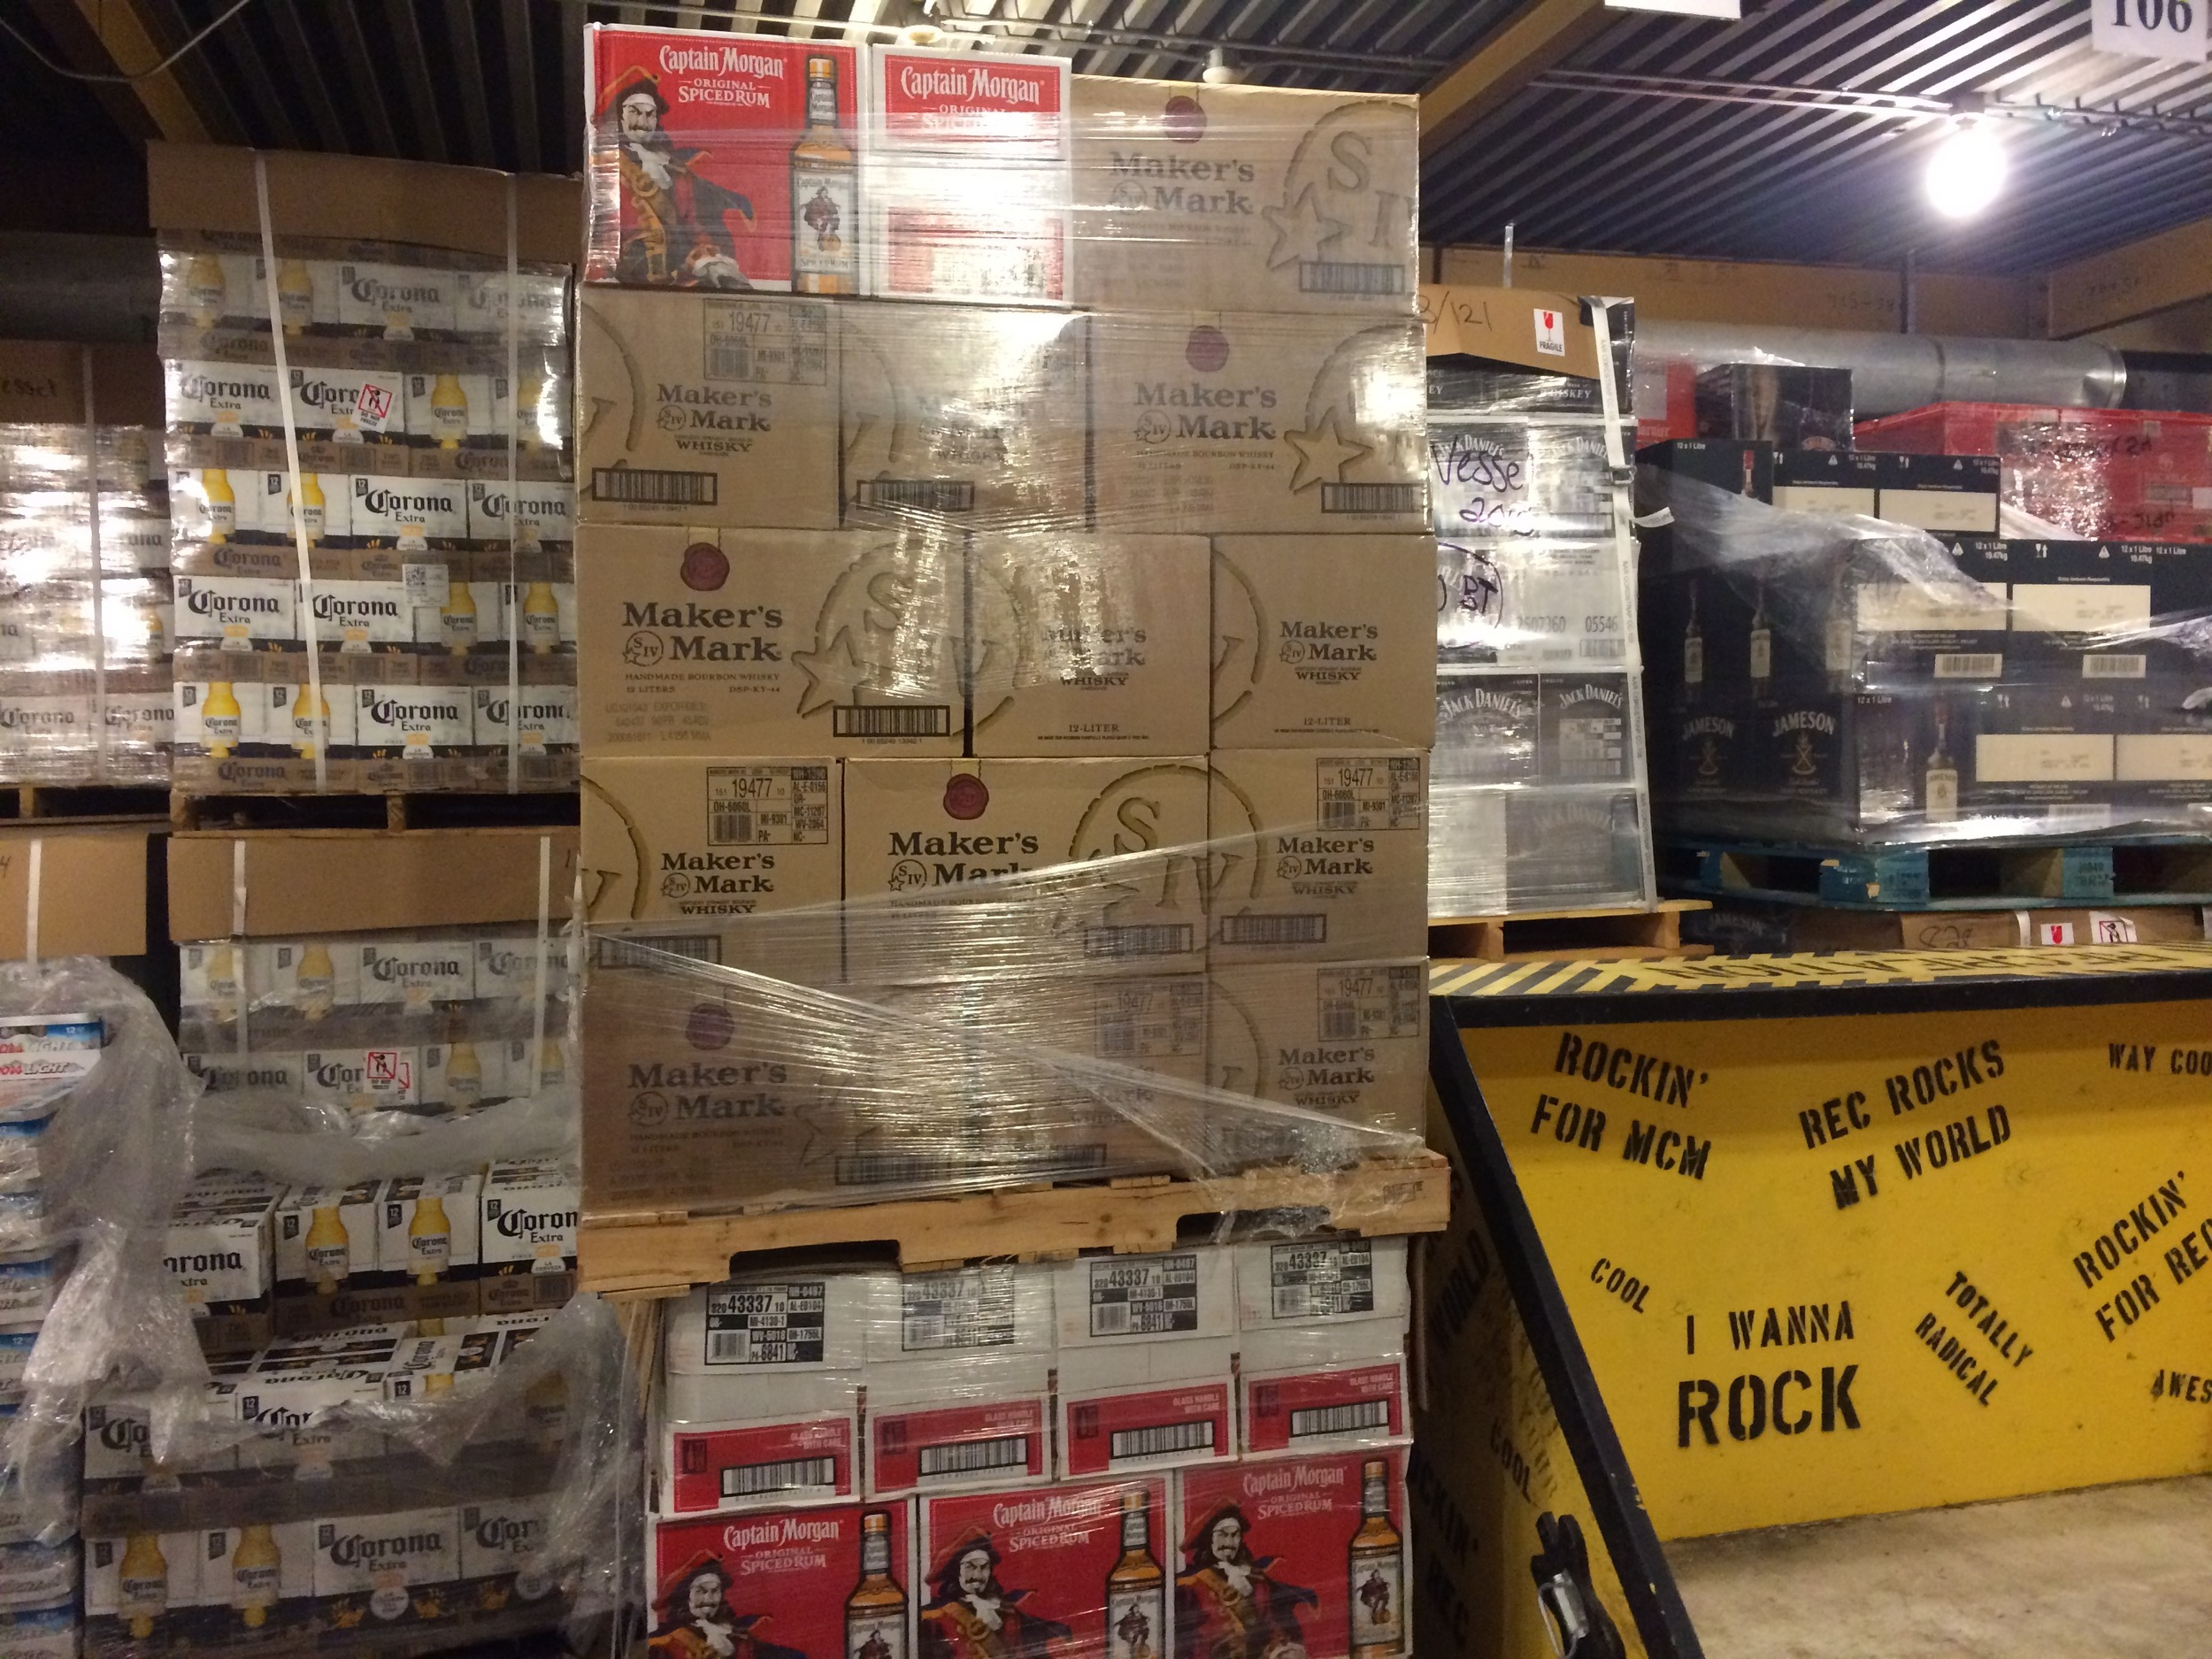 Sometimes I get to visit the beverage warehouse where there's more booze than I've ever seen in my life.